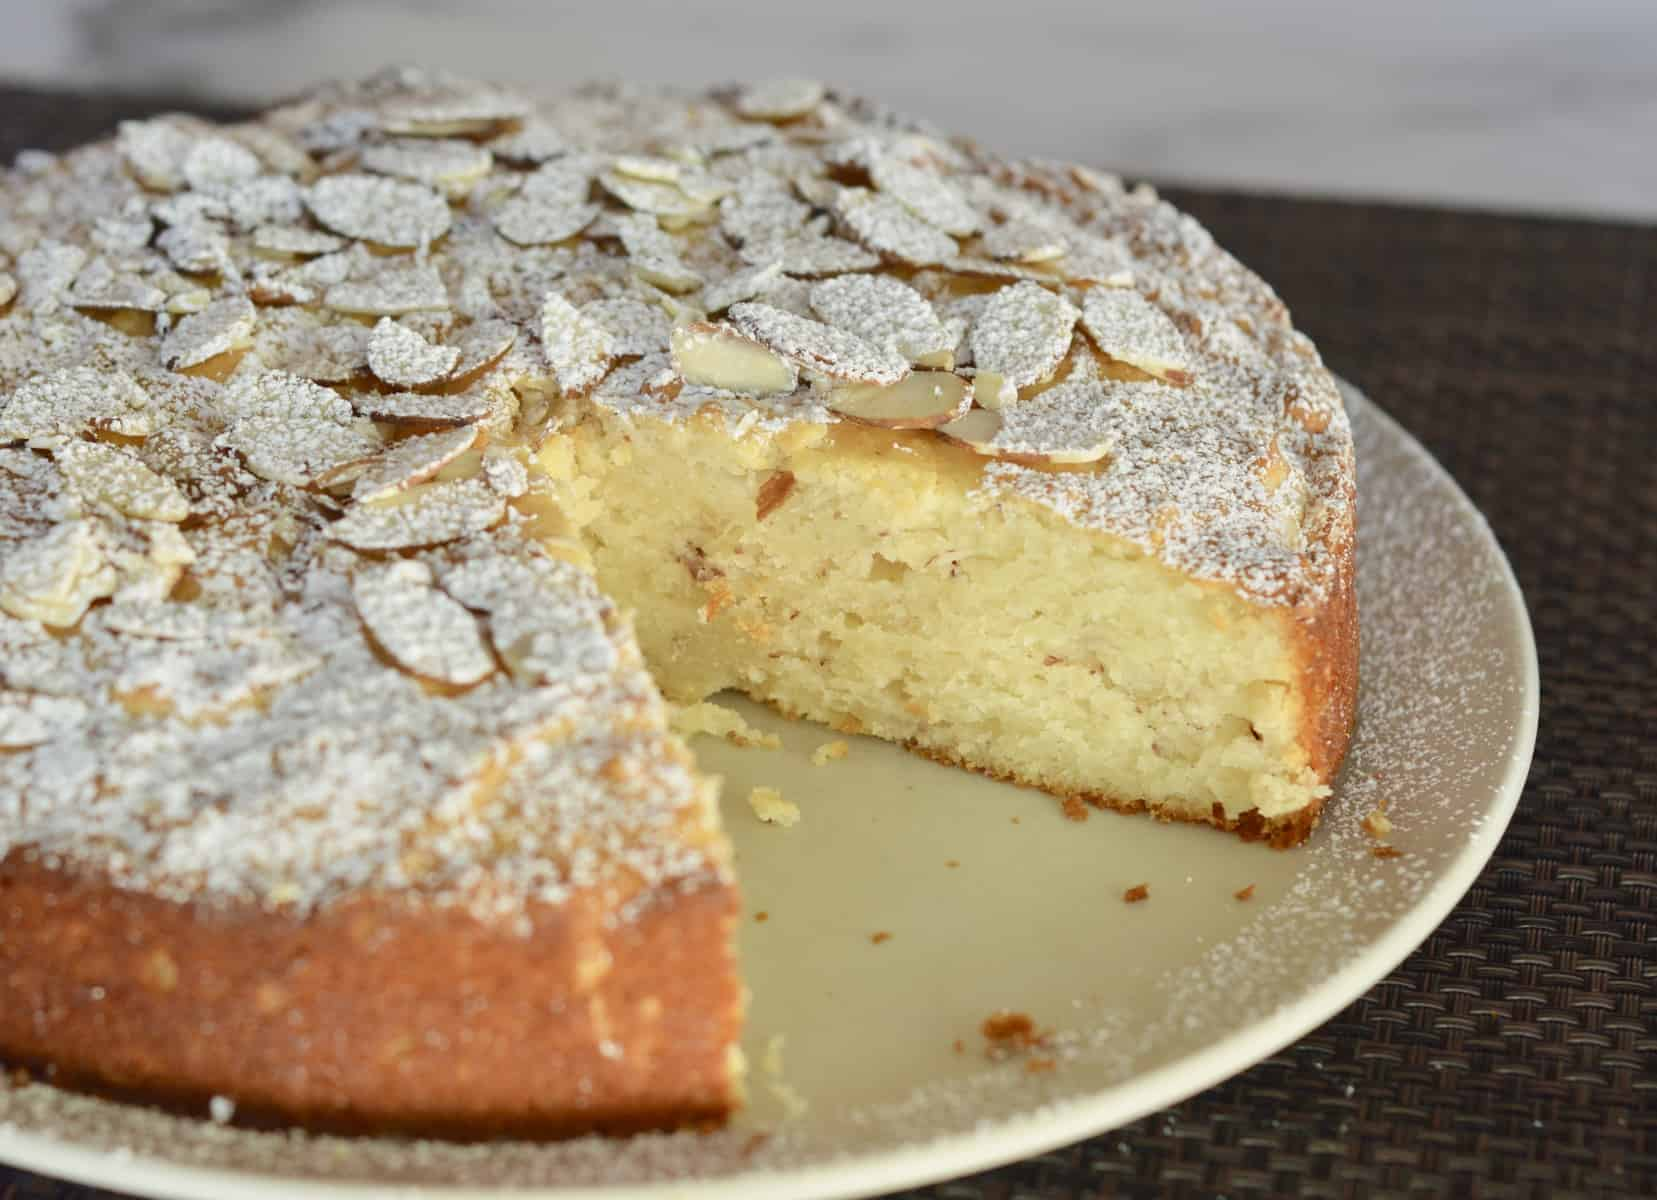 Almond dessert with slice almonds and powdered sugar on top.